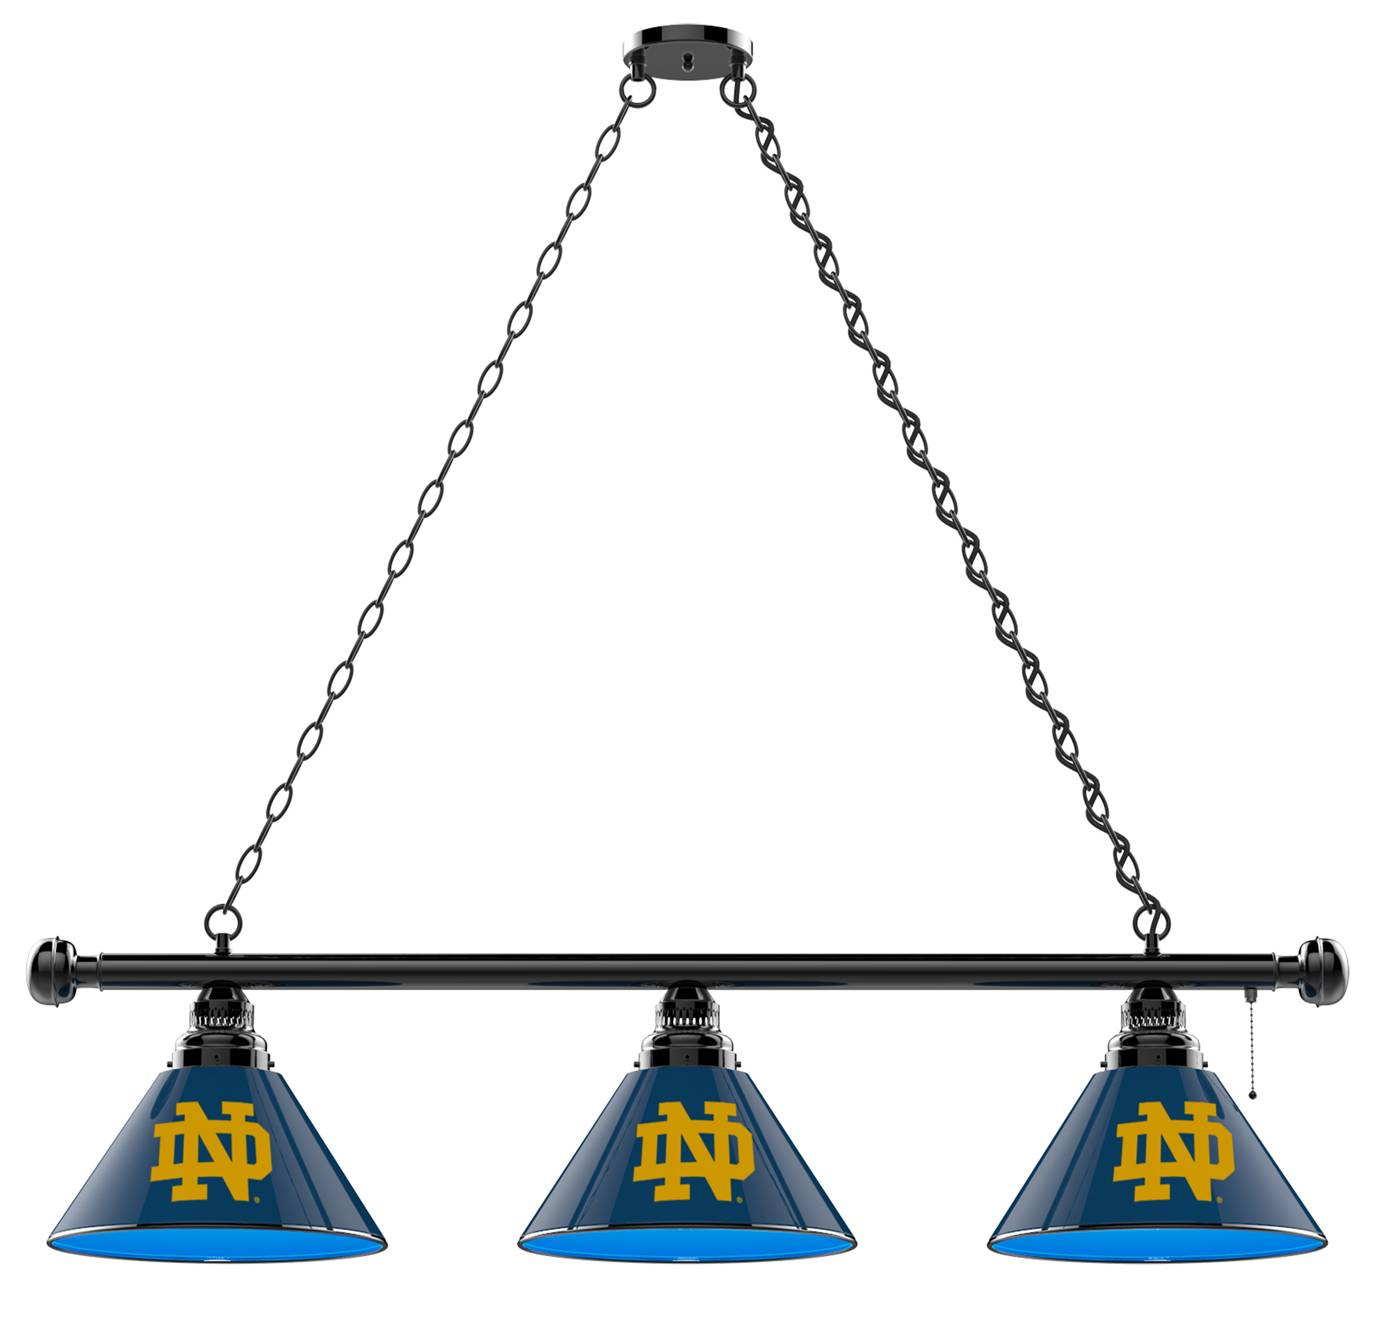 Superior Brighten Up Your Game Room With The Notre Dame Fighting Irish 3 Shade Pool  Table Light And Show Off Your Team Pride! This Officially Licensed Light  Fixture ...